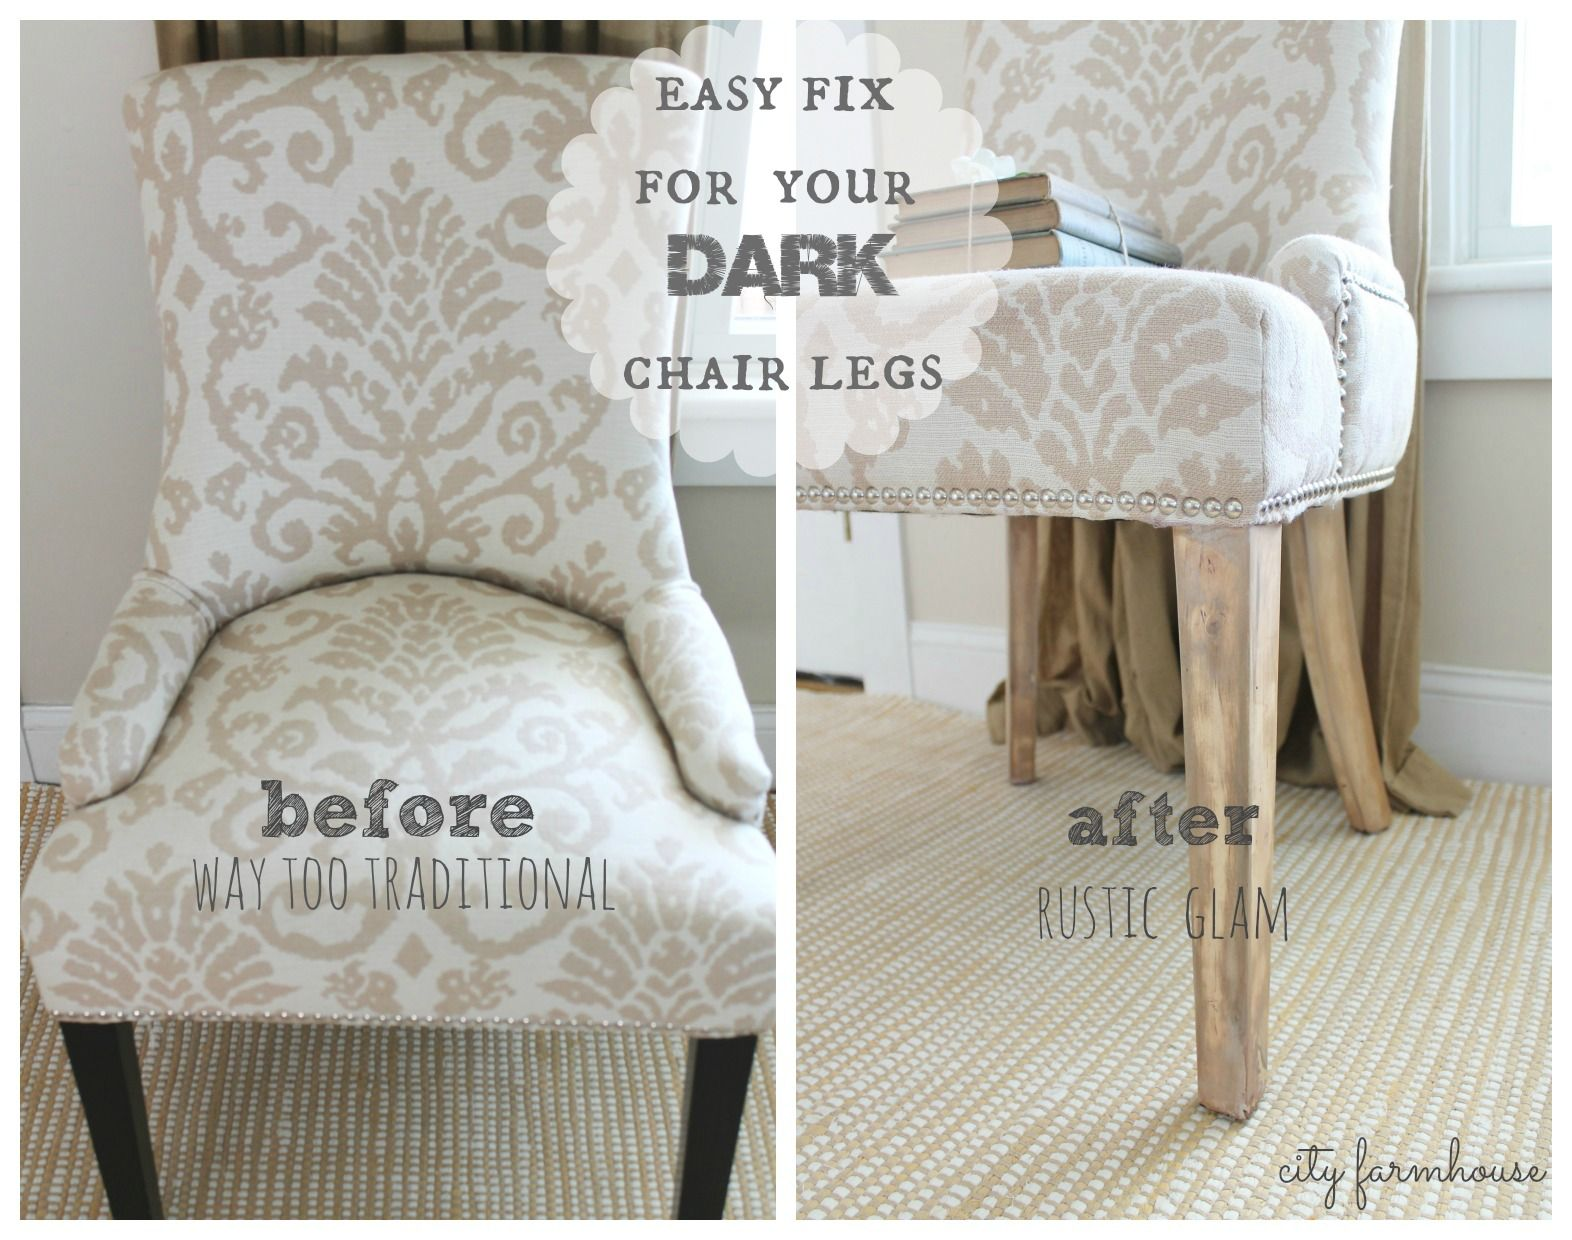 Rustic Glam Chair Makeover Easy Fix For Those Dark Legs City Farmhouse Home Decor Chair Makeover Home Diy